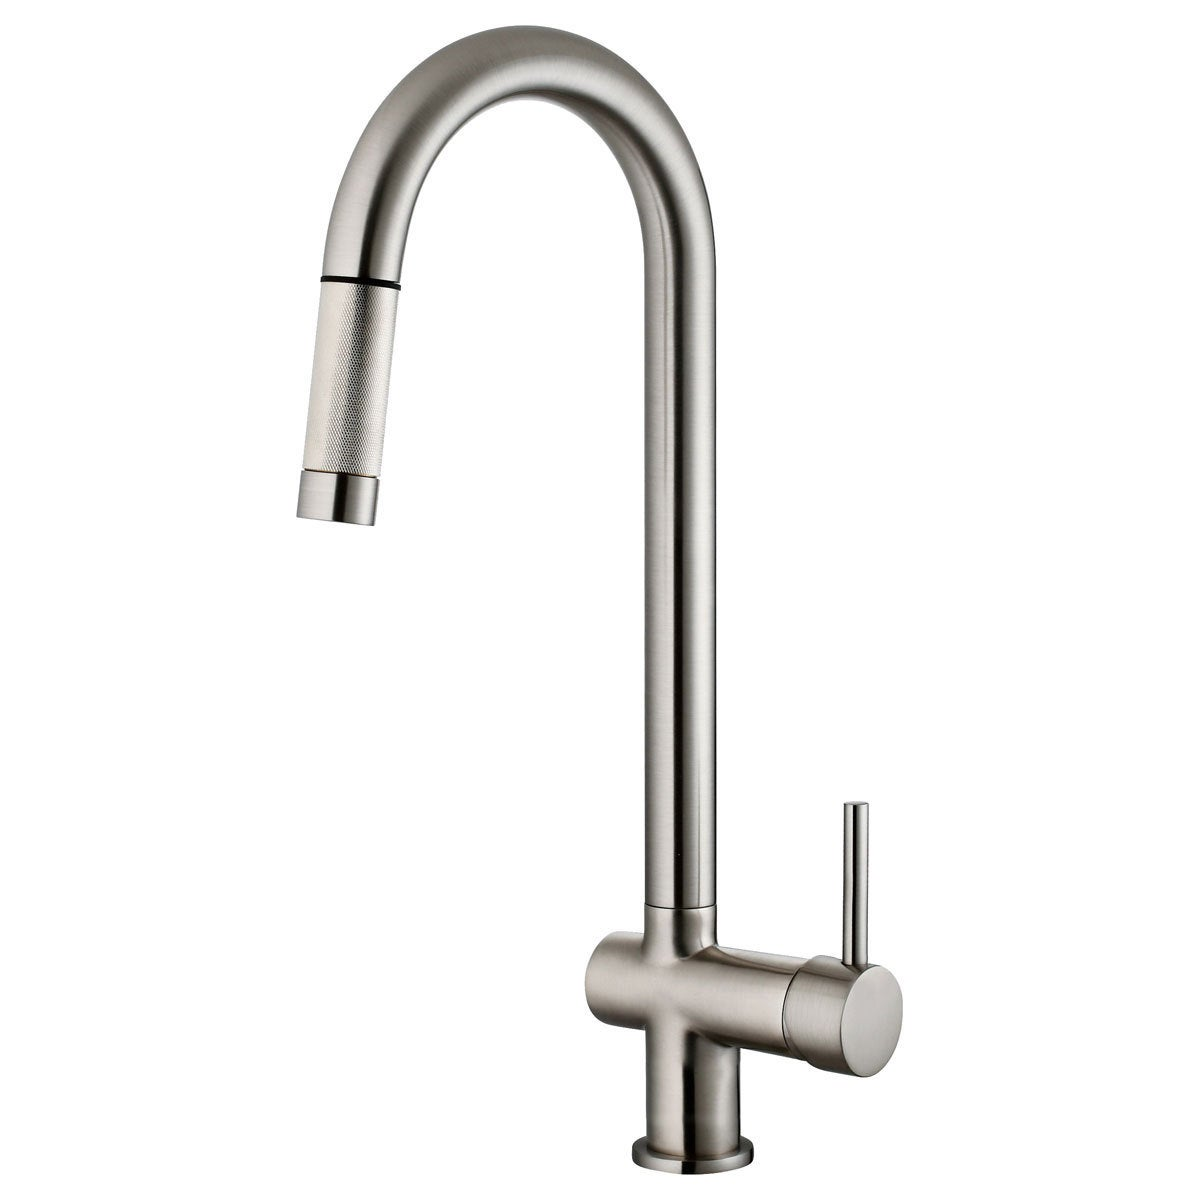 Lk13b Pull Out Kitchen Faucet Brushed Nickel Finish